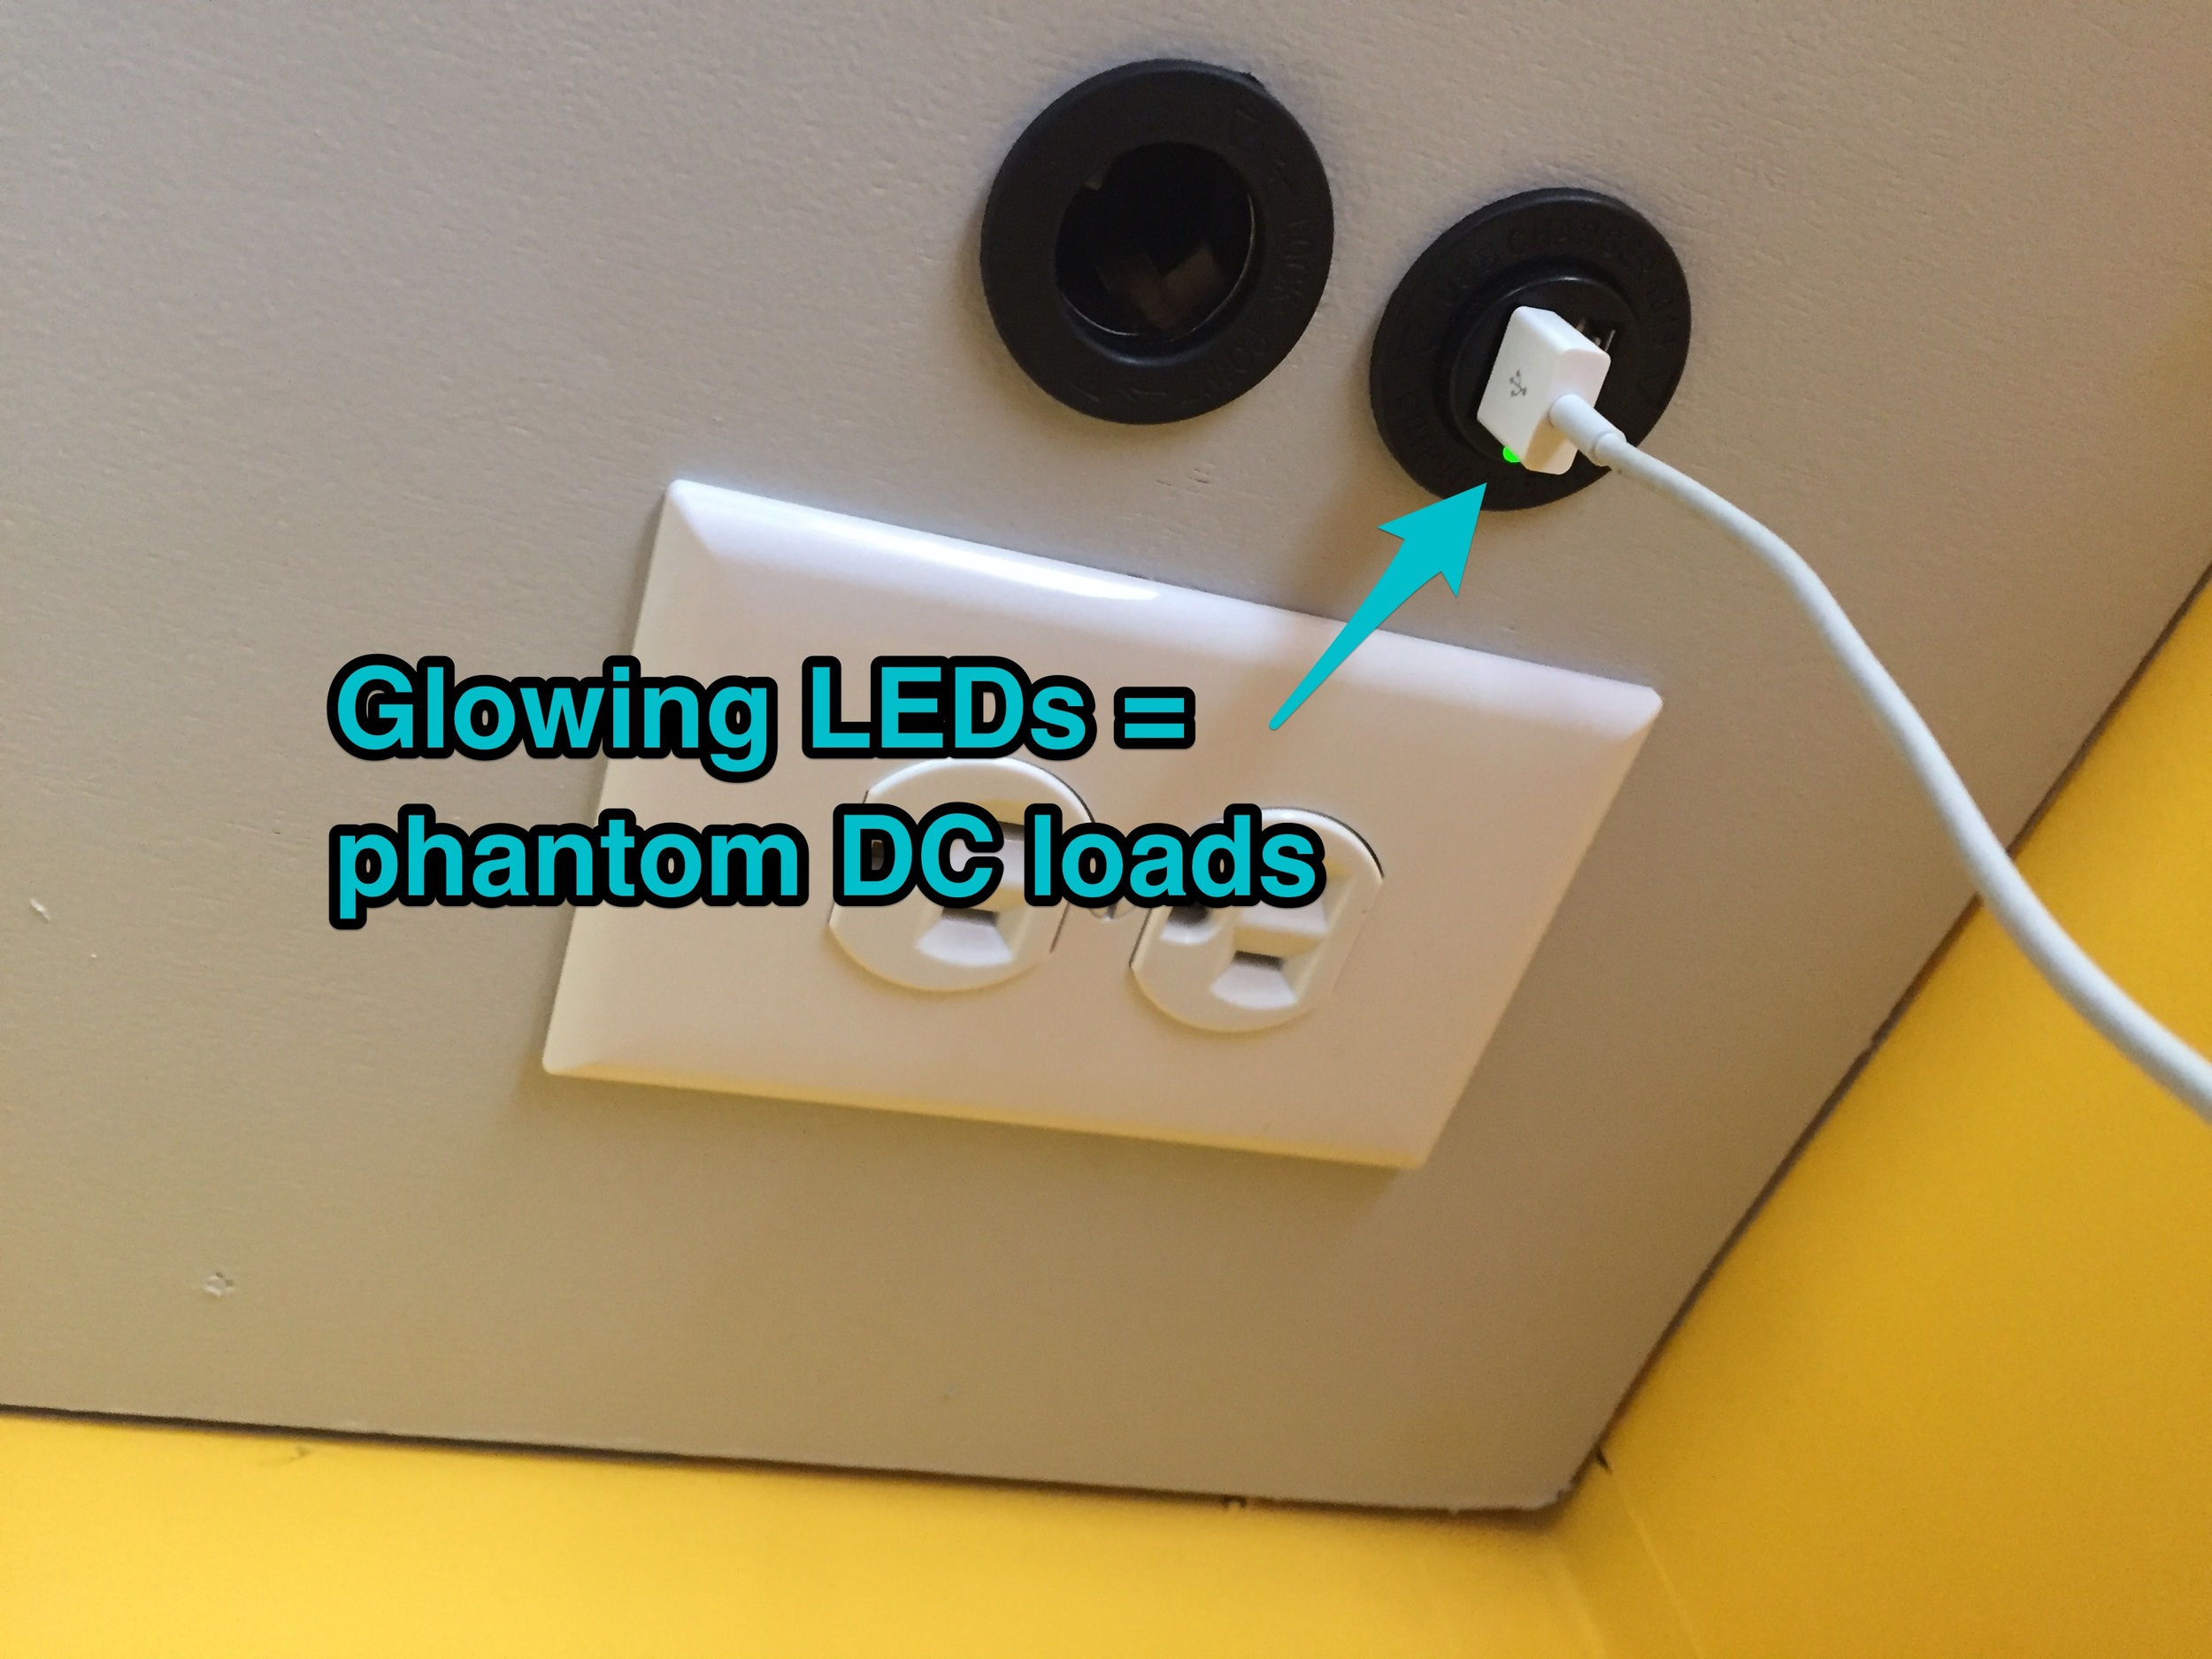 Phantom loads can be AC or DC. Glowing LEDs are sure indicators of phantoms. This DC receptacle's light is such a tiny load though, that it's not worth worrying over.